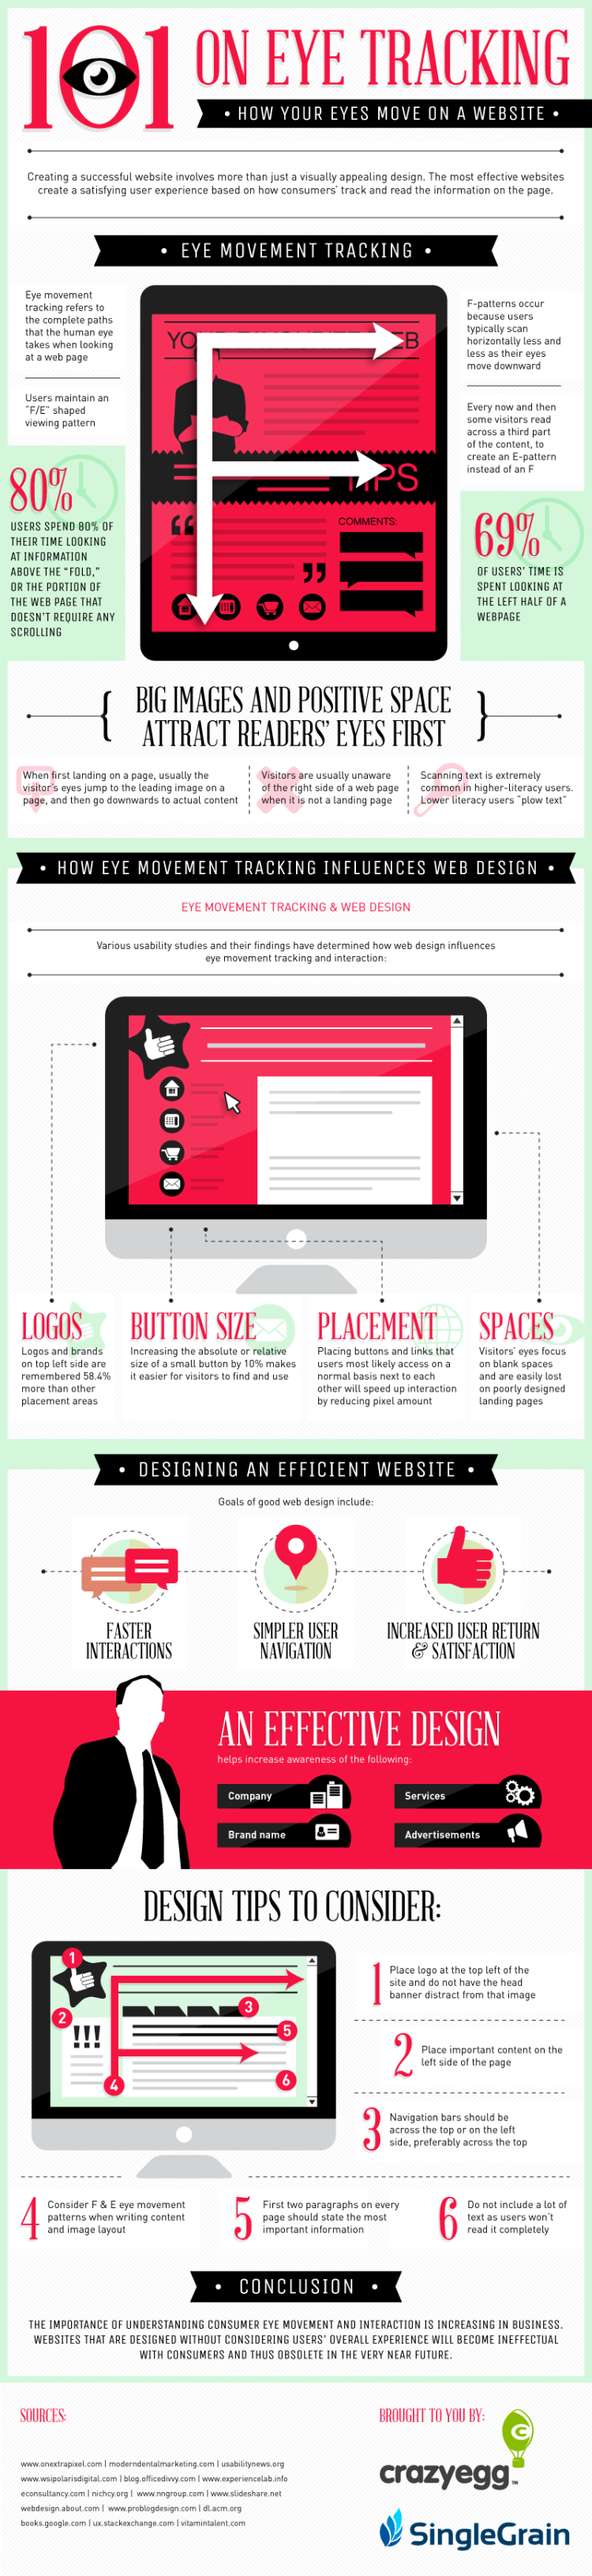 Website Eye Tracking 101 Infographic